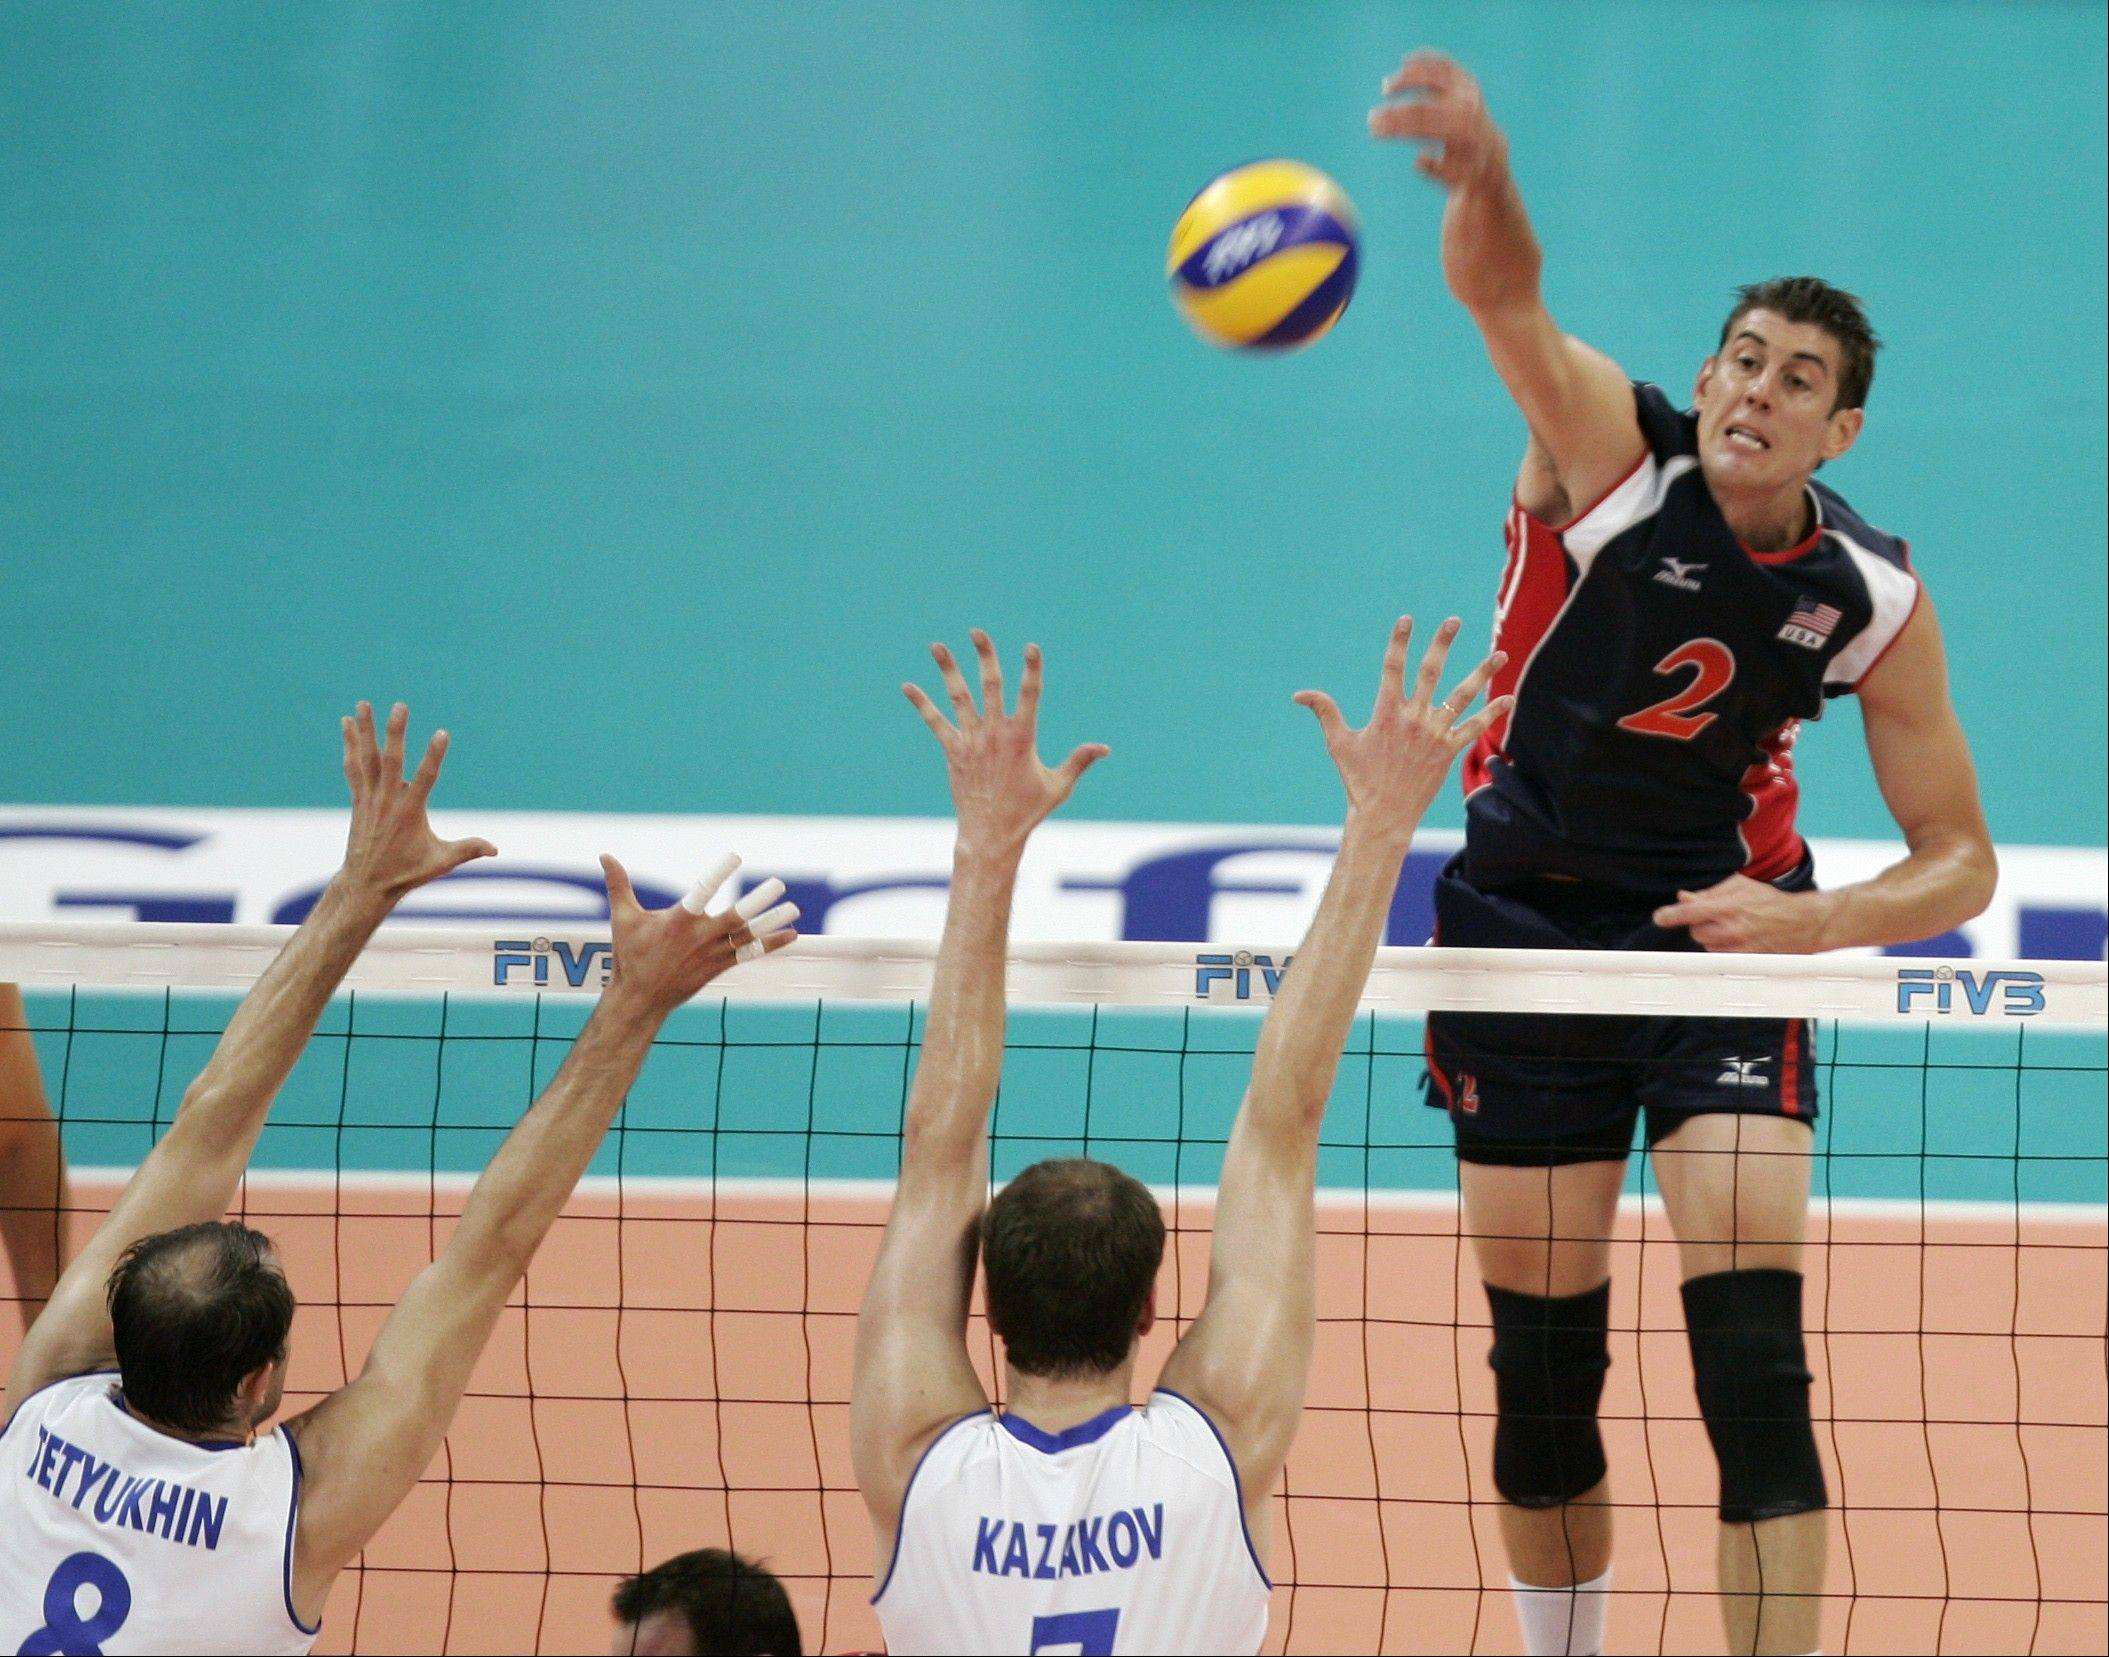 Sean Rooney of Team USA spikes the ball by Russia's Sergey Tetyukhin, left, and Alexey Kazakov during the final round of the 2009 FIVB World League Volleyball match in Belgrade, Serbia.